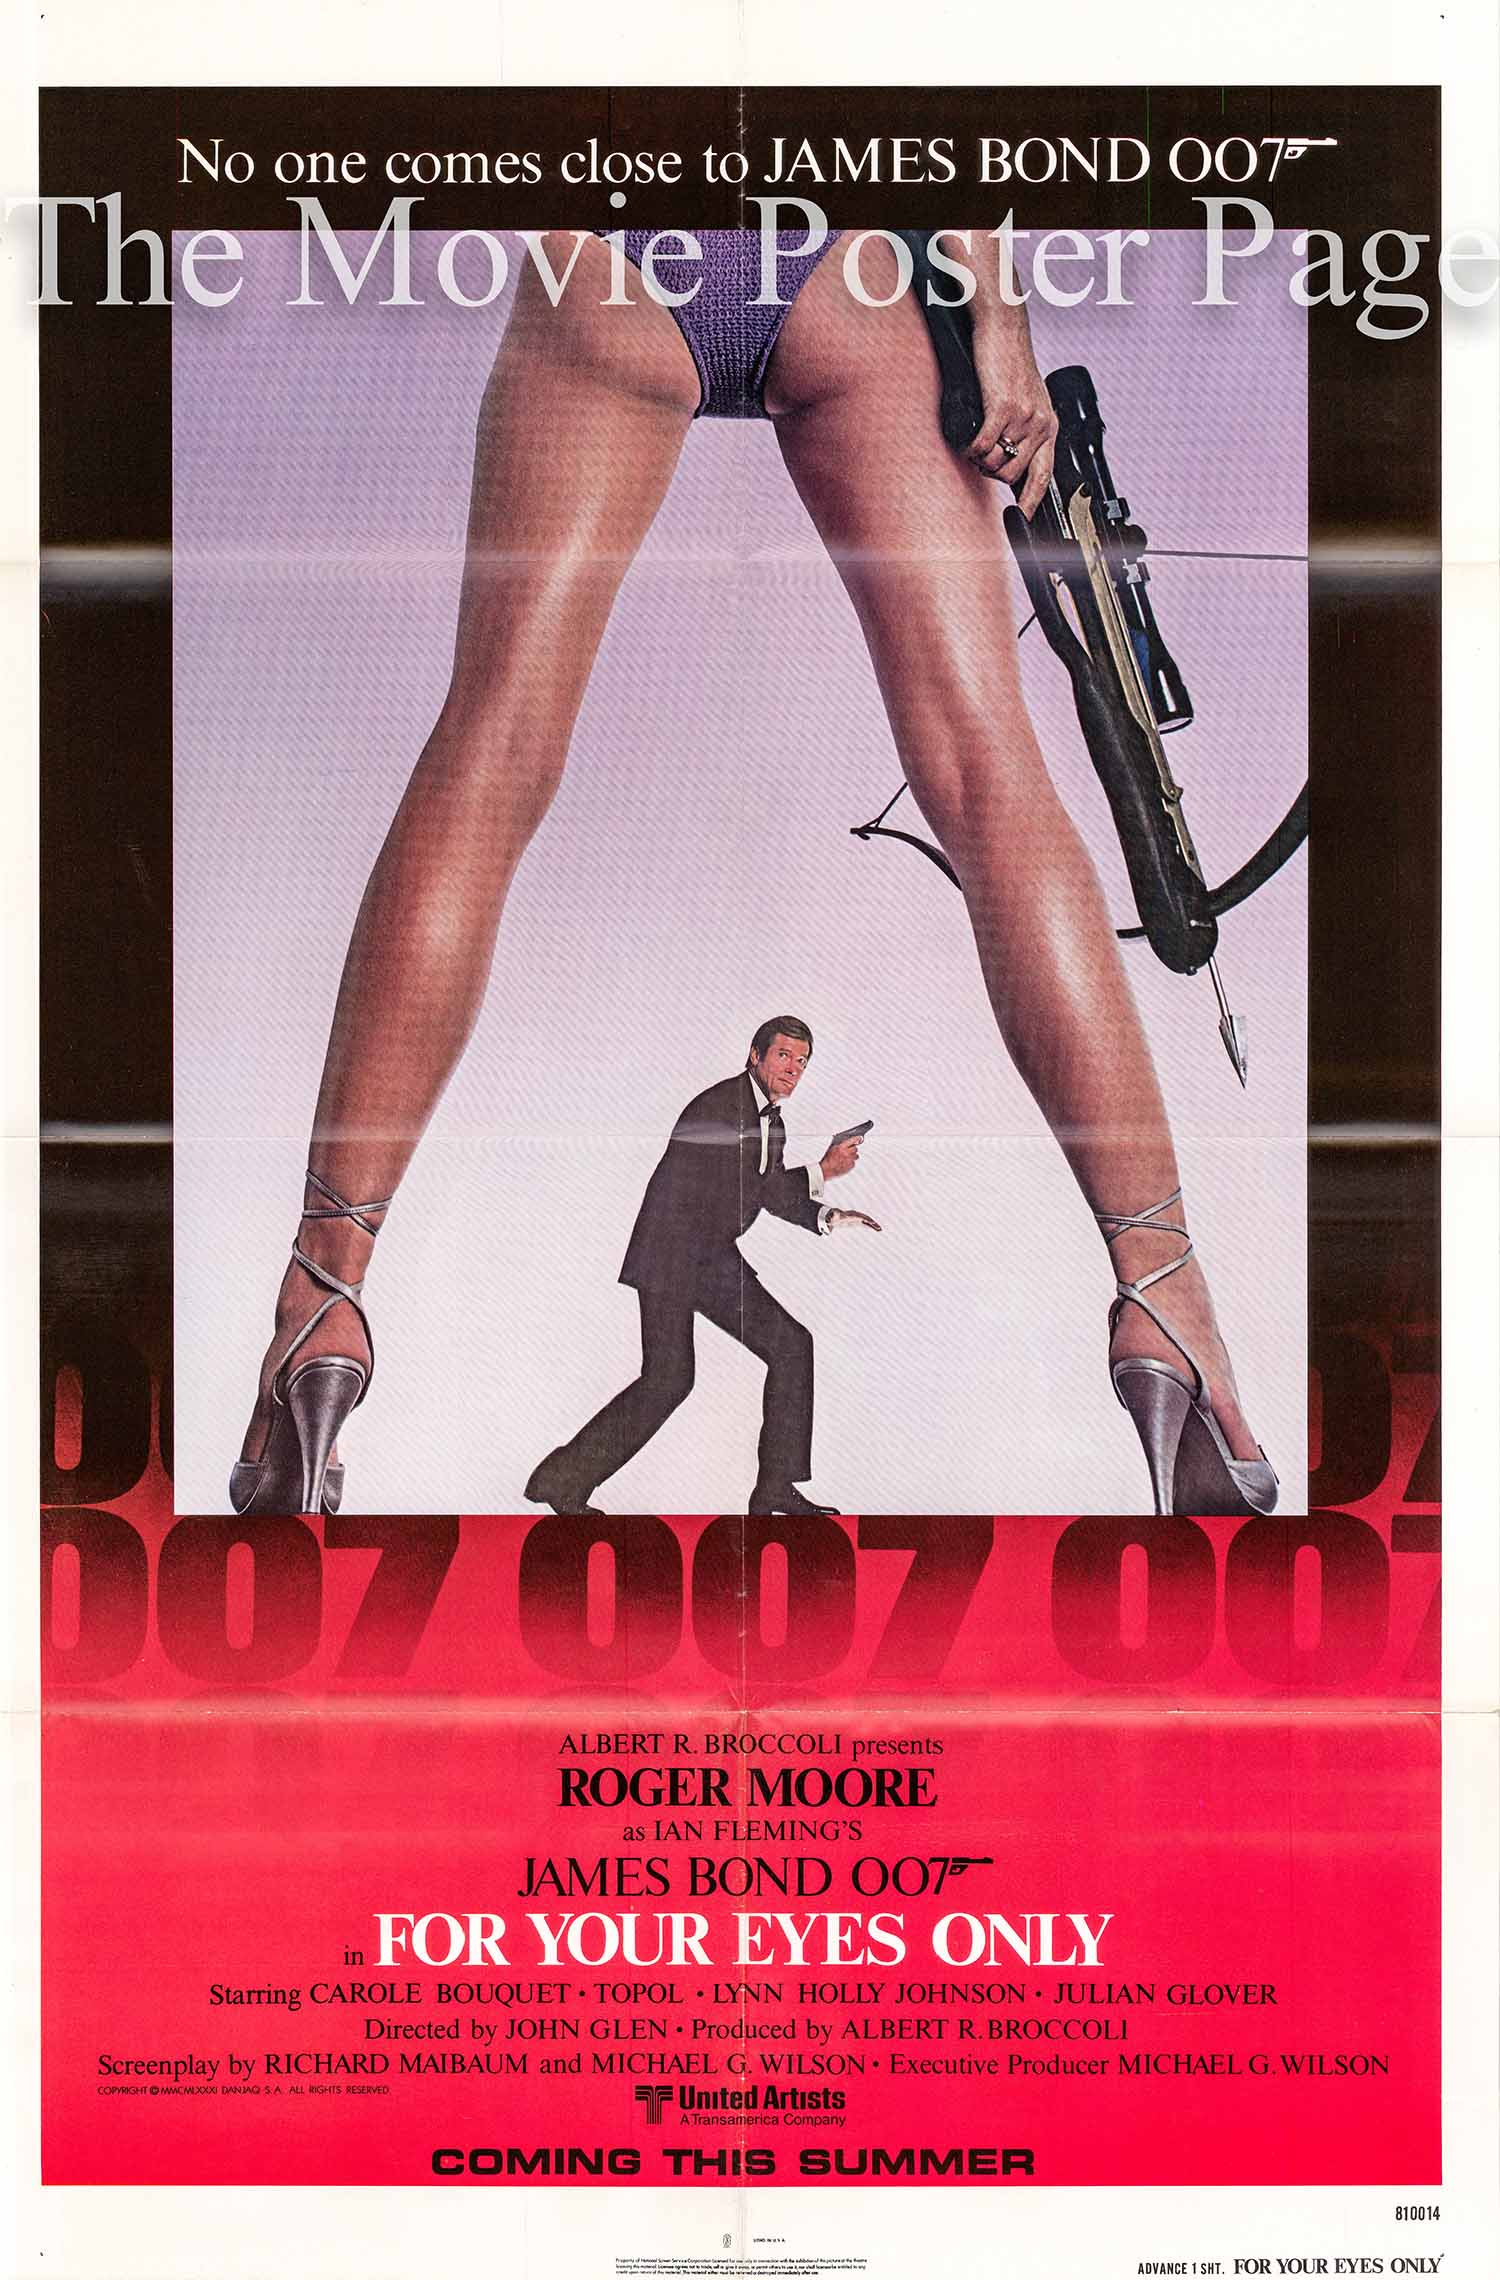 This is an image of the US promotional poster for the 1981 John Glen film For Your Eyes Only starring Roger Moore.